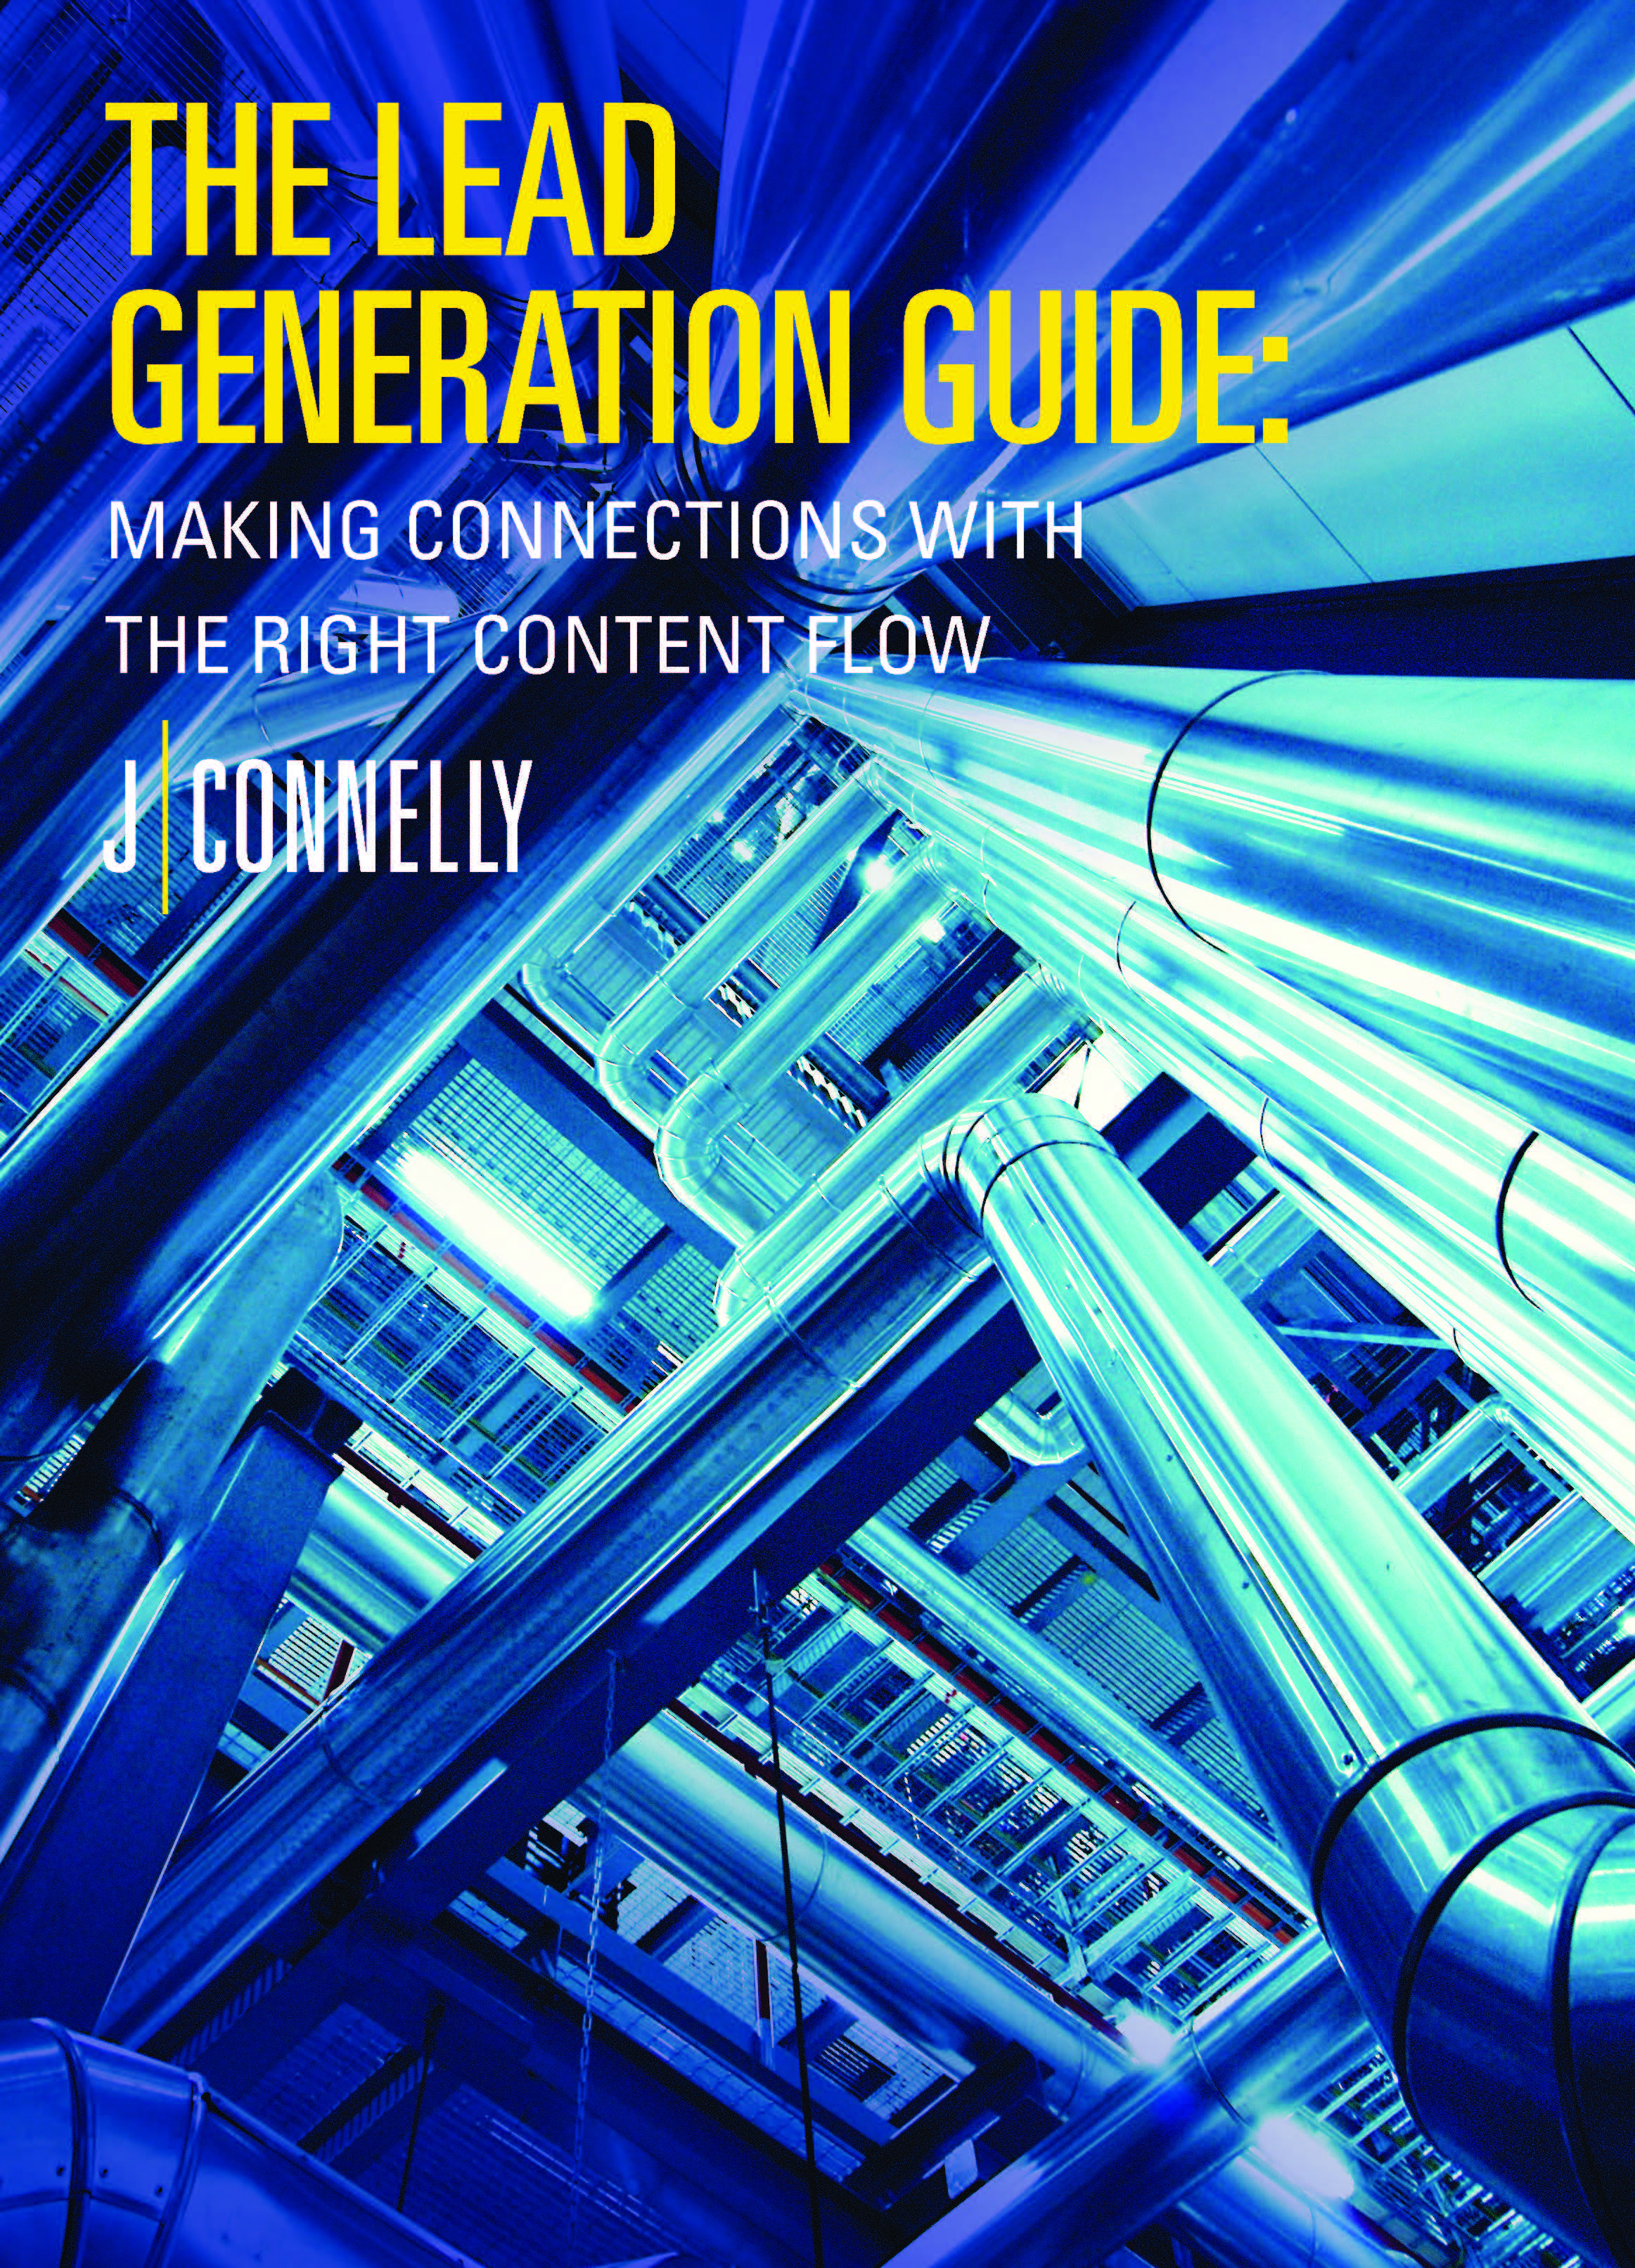 JConnelly_The Lead Generation Guide_Page_1